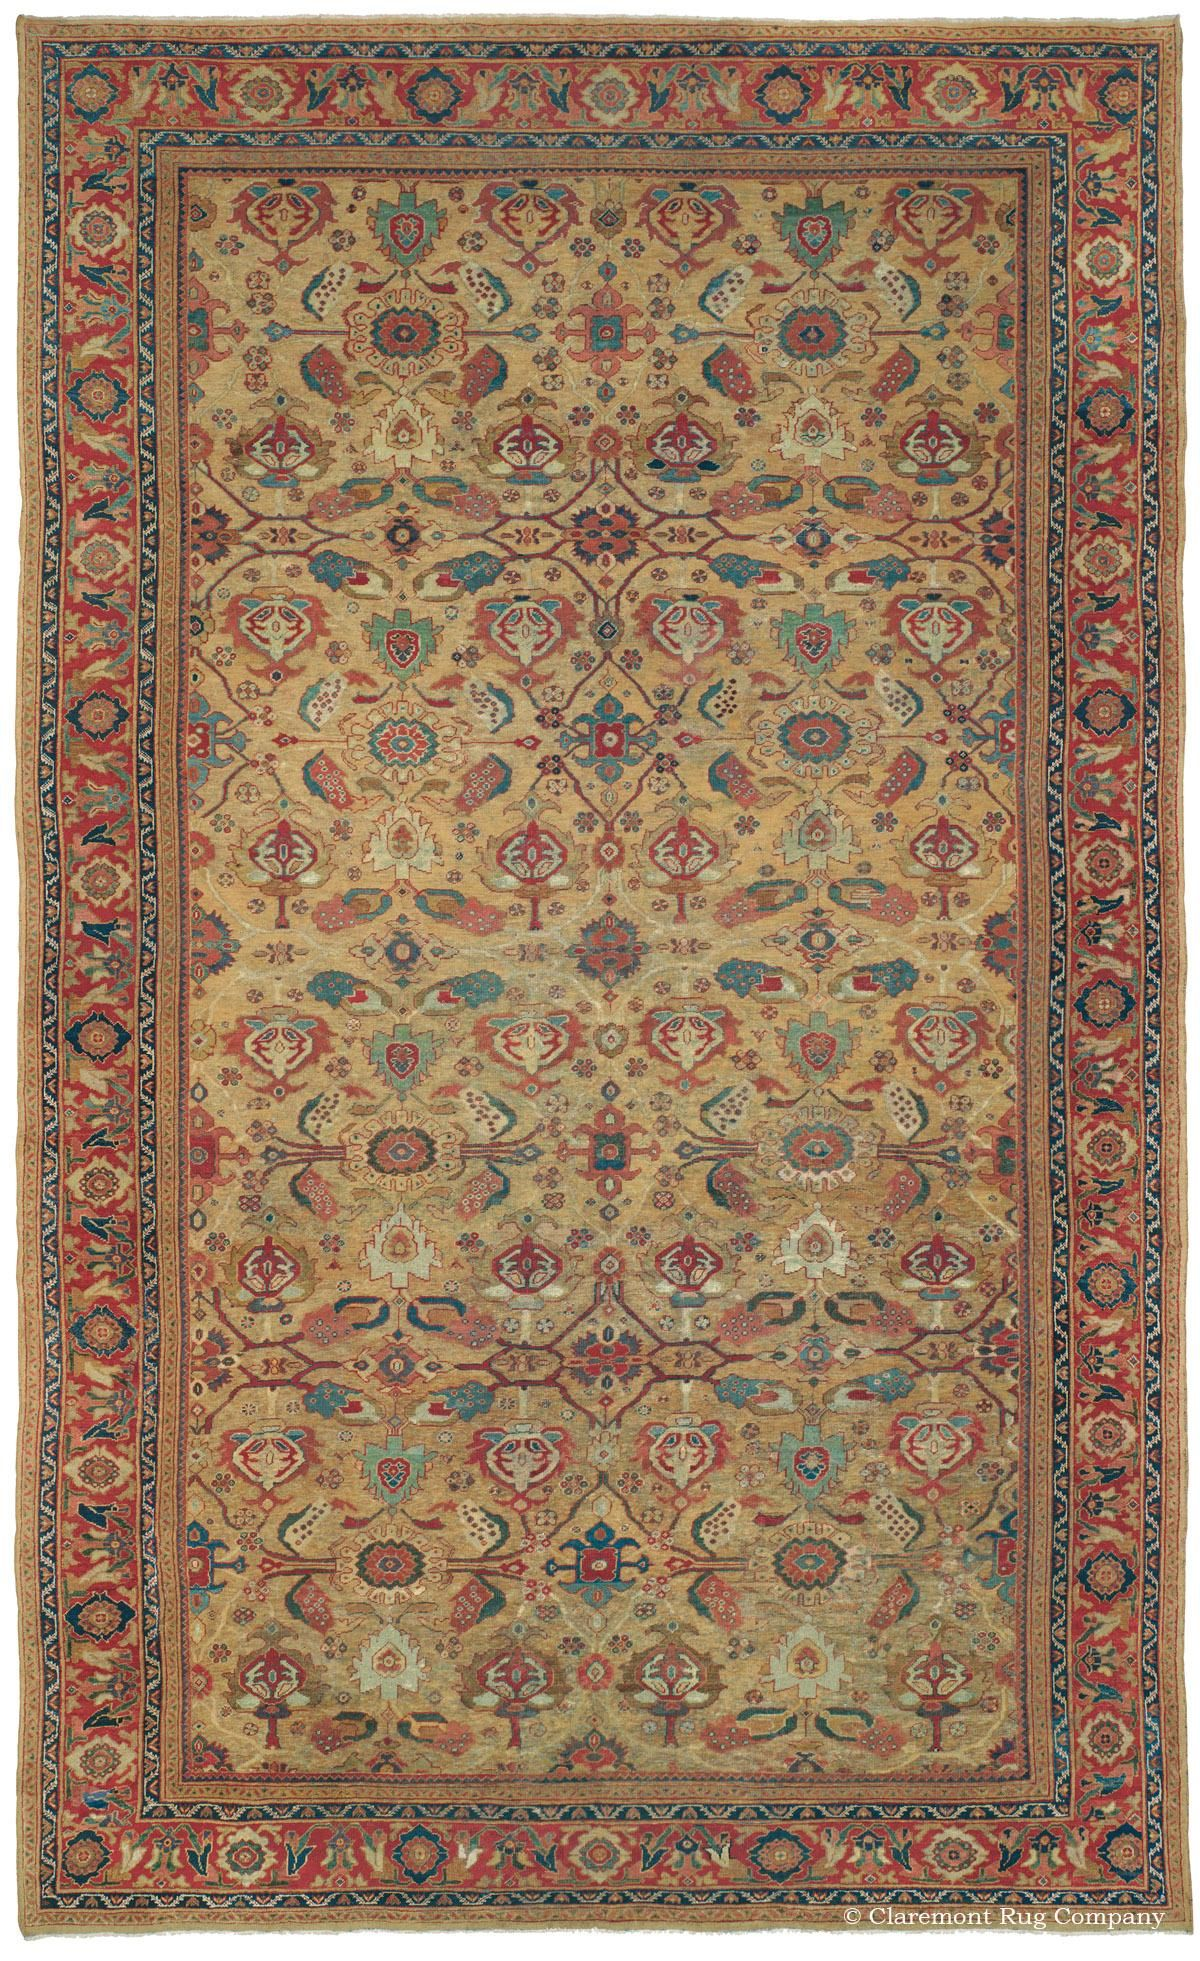 History Design Of Antique Sultanabad Carpets